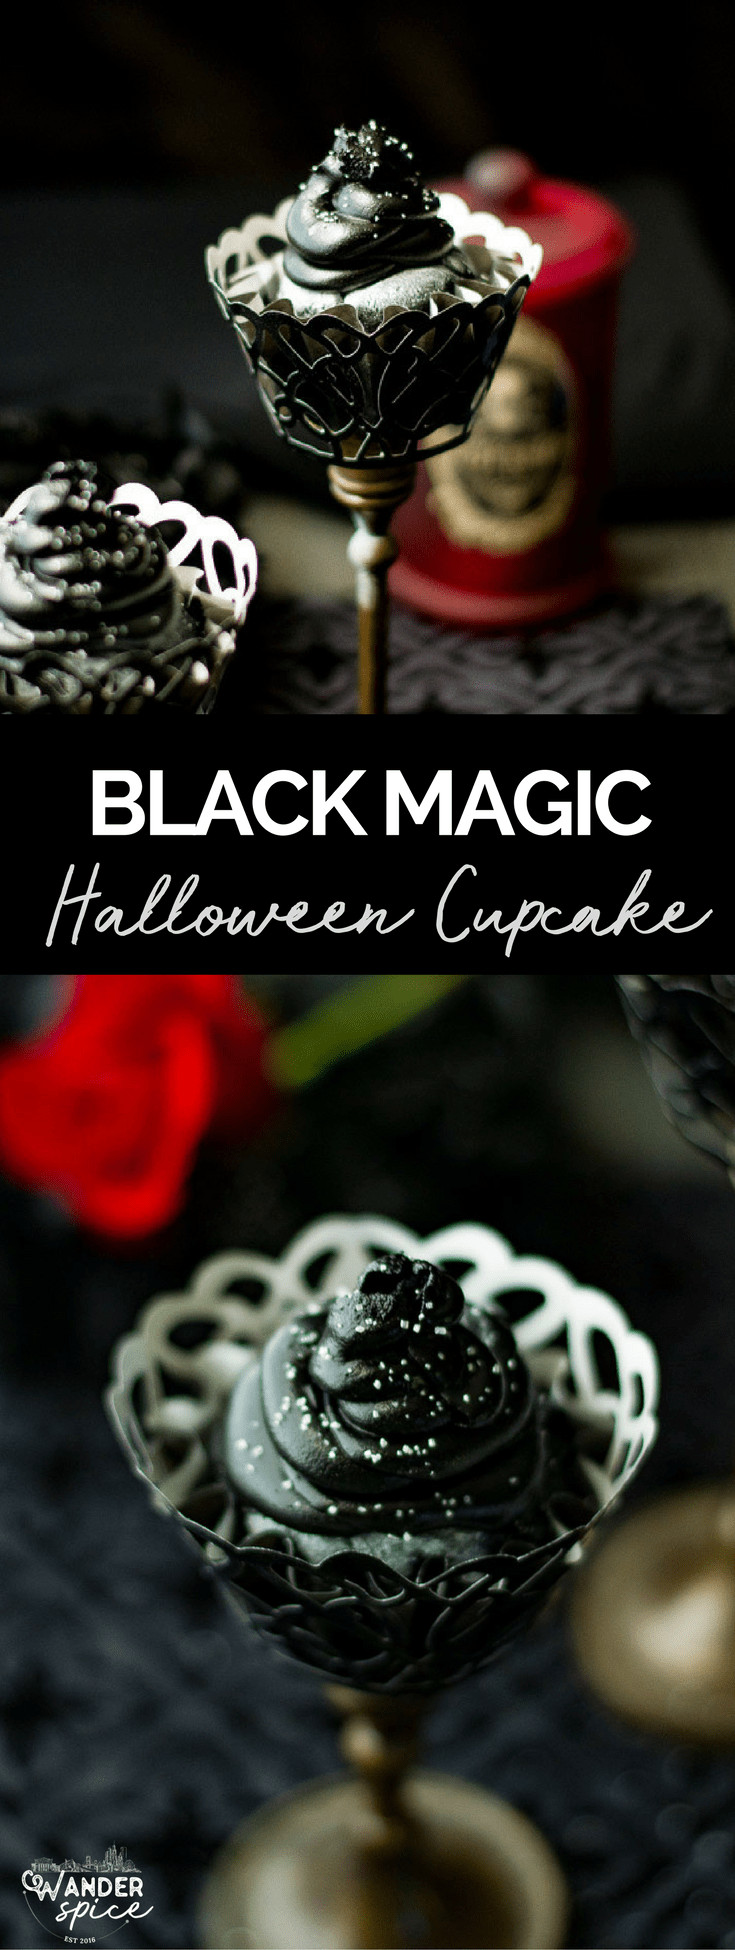 Black Magic Cupcakes - Black Cupcake Recipe for Halloween with Silver Glitter